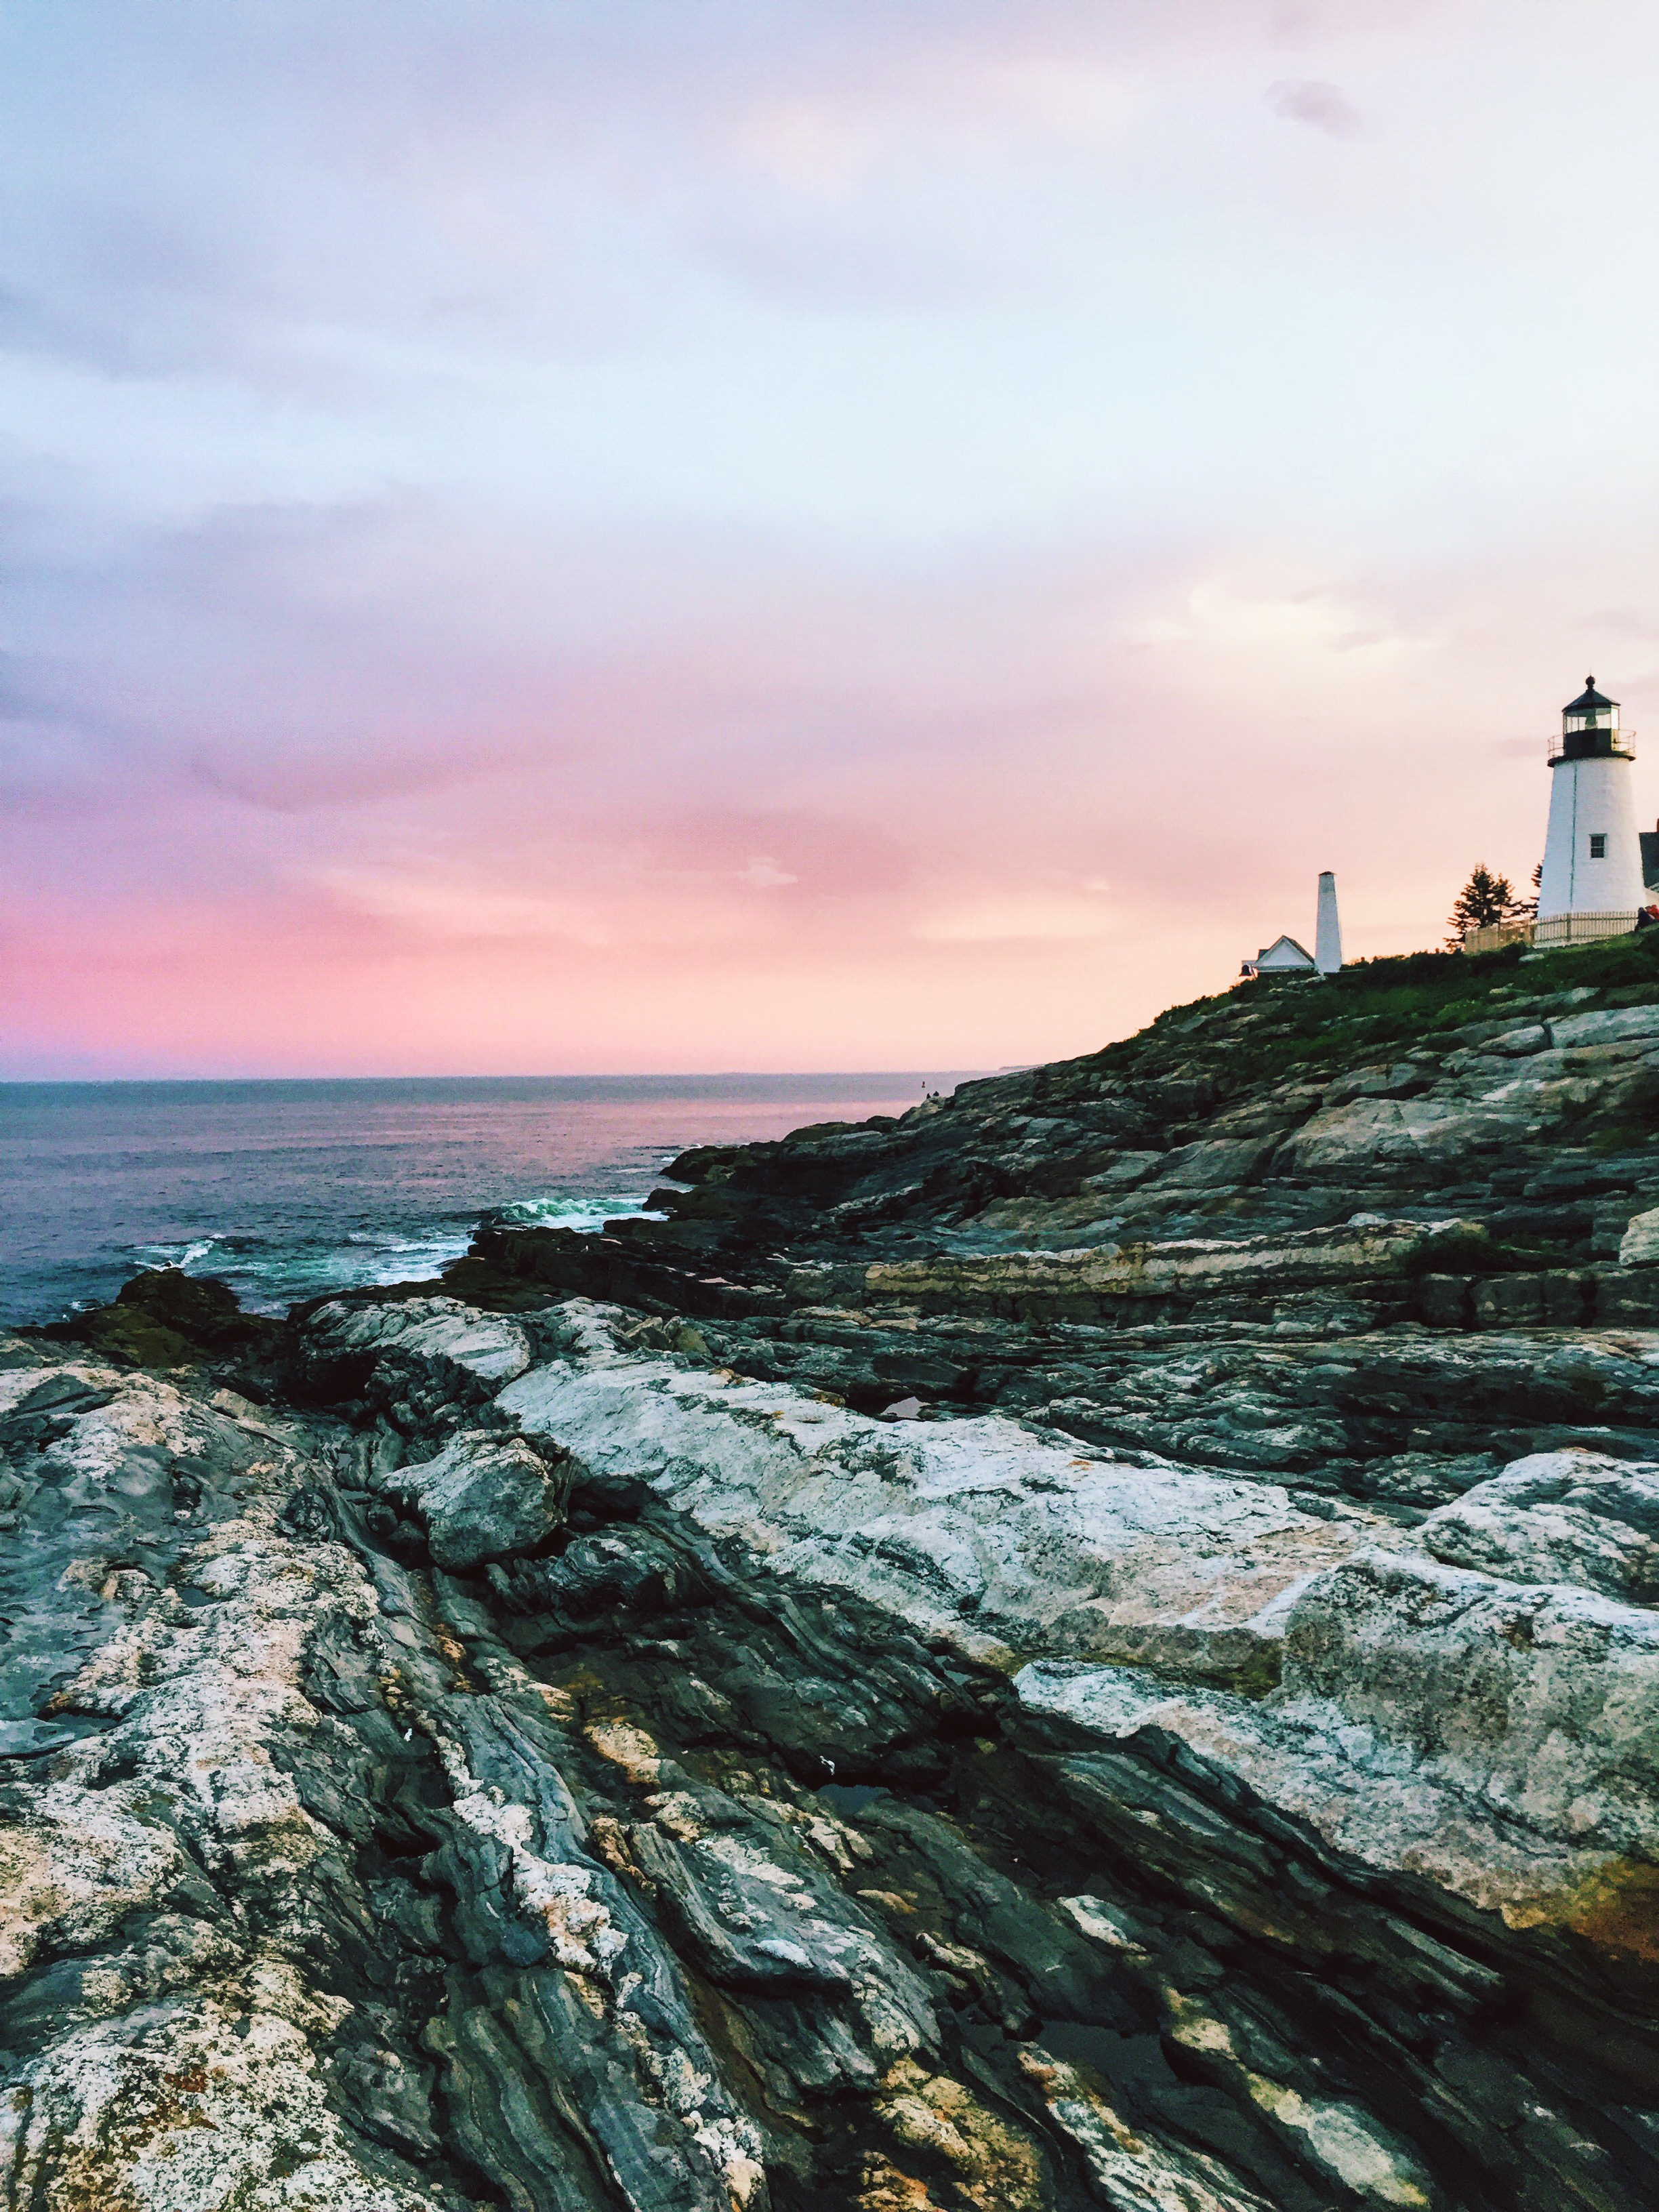 Best Places to Stay in Maine | Best Hotels on the Coast of Maine | Where to stay in the coastal towns of Maine | Travel Guide to the coast of Maine | How to Experience Maine | Camden, Rockport, Rockland, Portland, Kennebunkport, Maine | Best of Maine via Travel Blogger @elanaloo + elanaloo.com